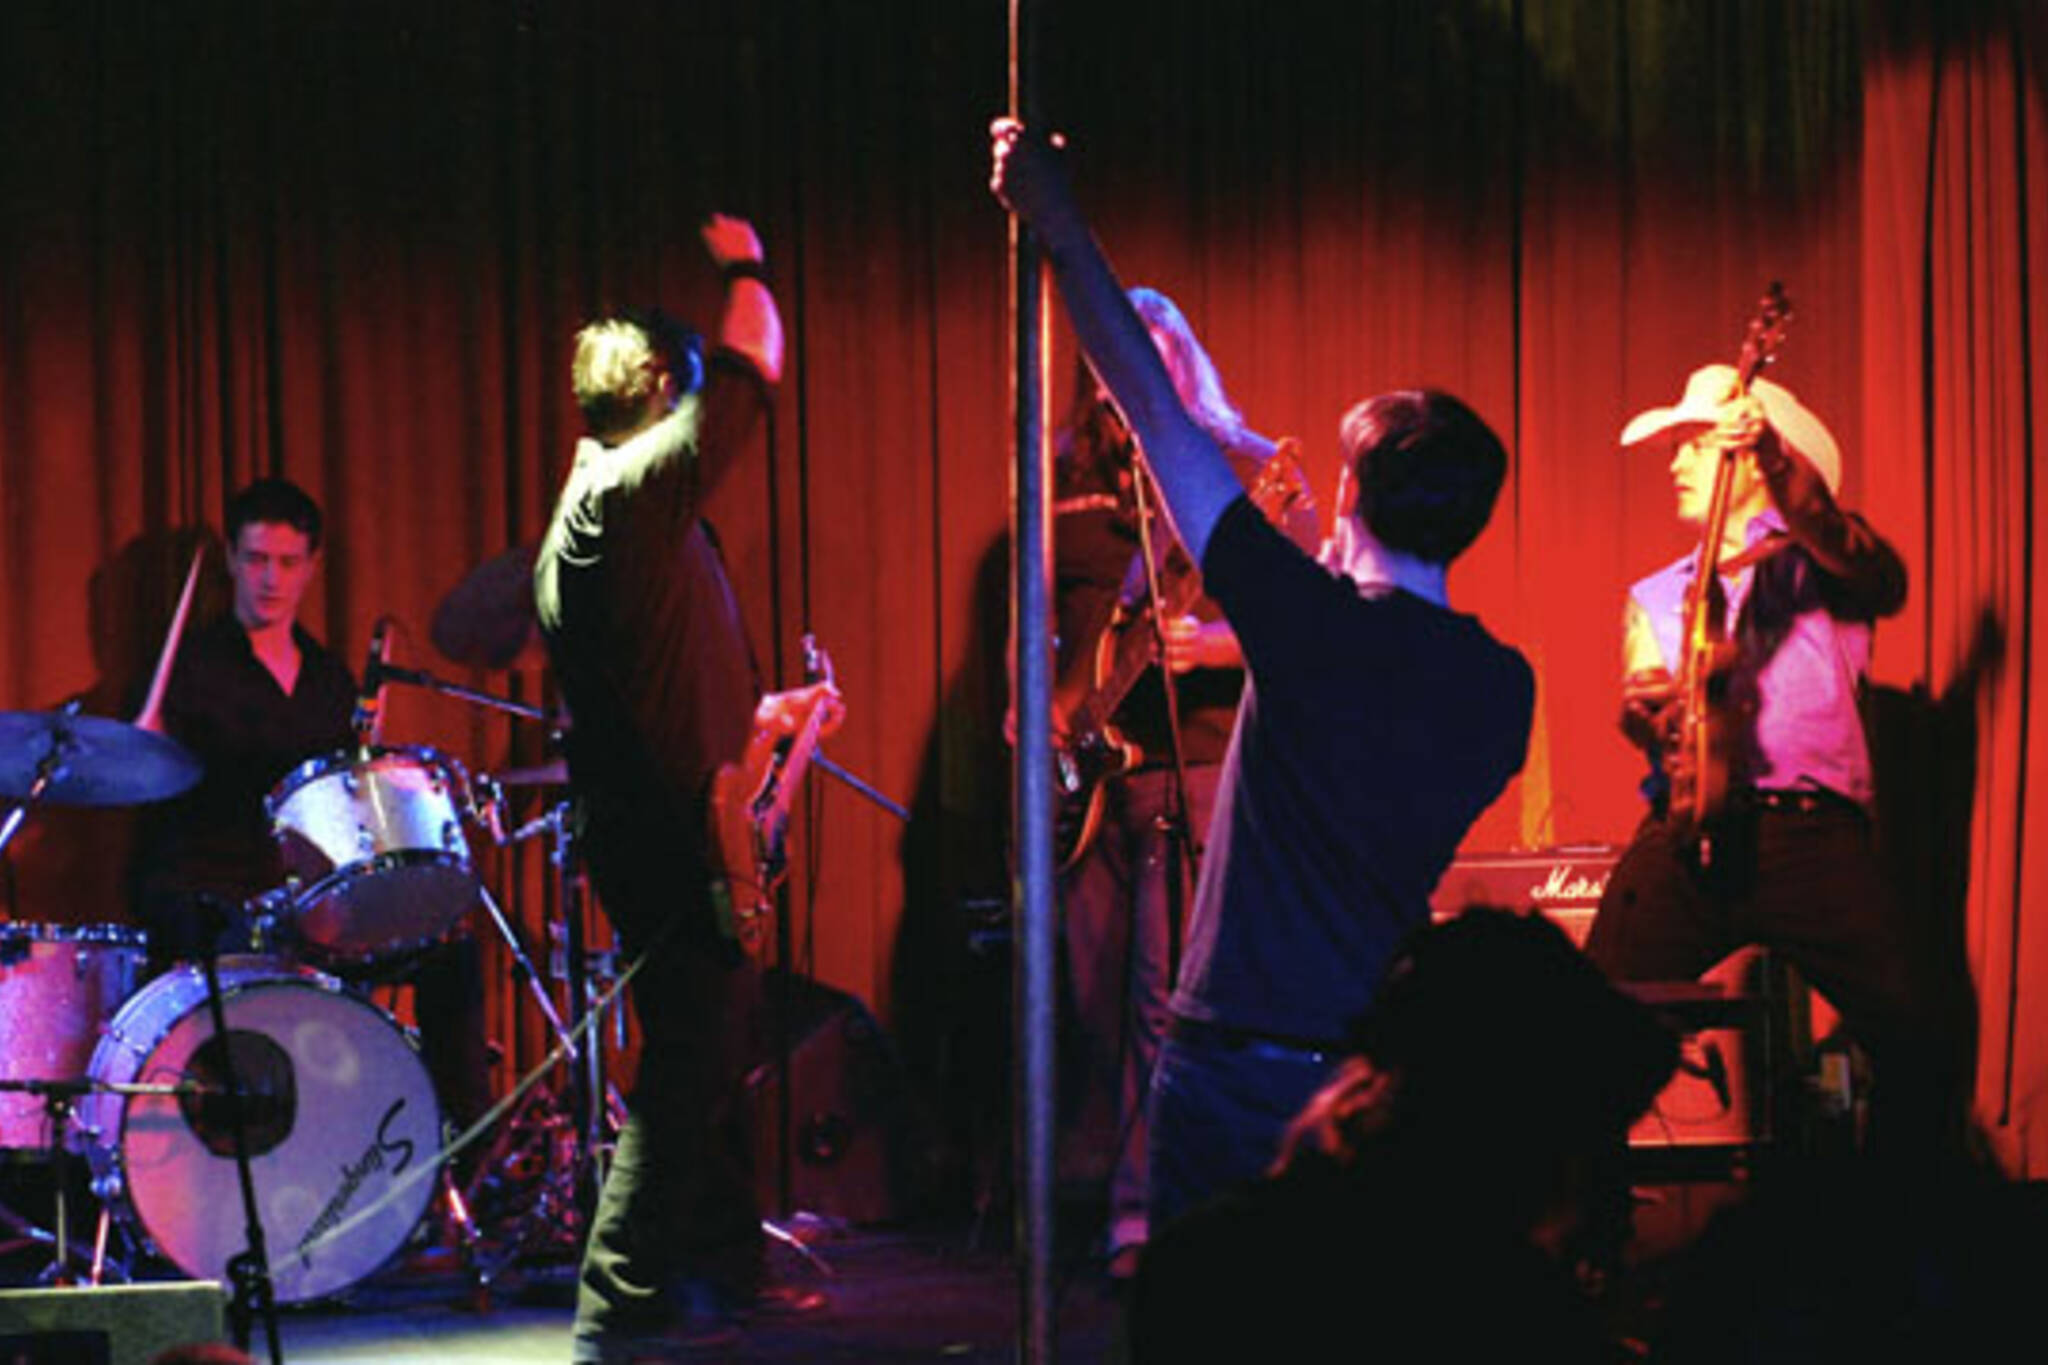 Live Band Karaoke meets pole dancing demonstrations at The Drake Underground in Toronto